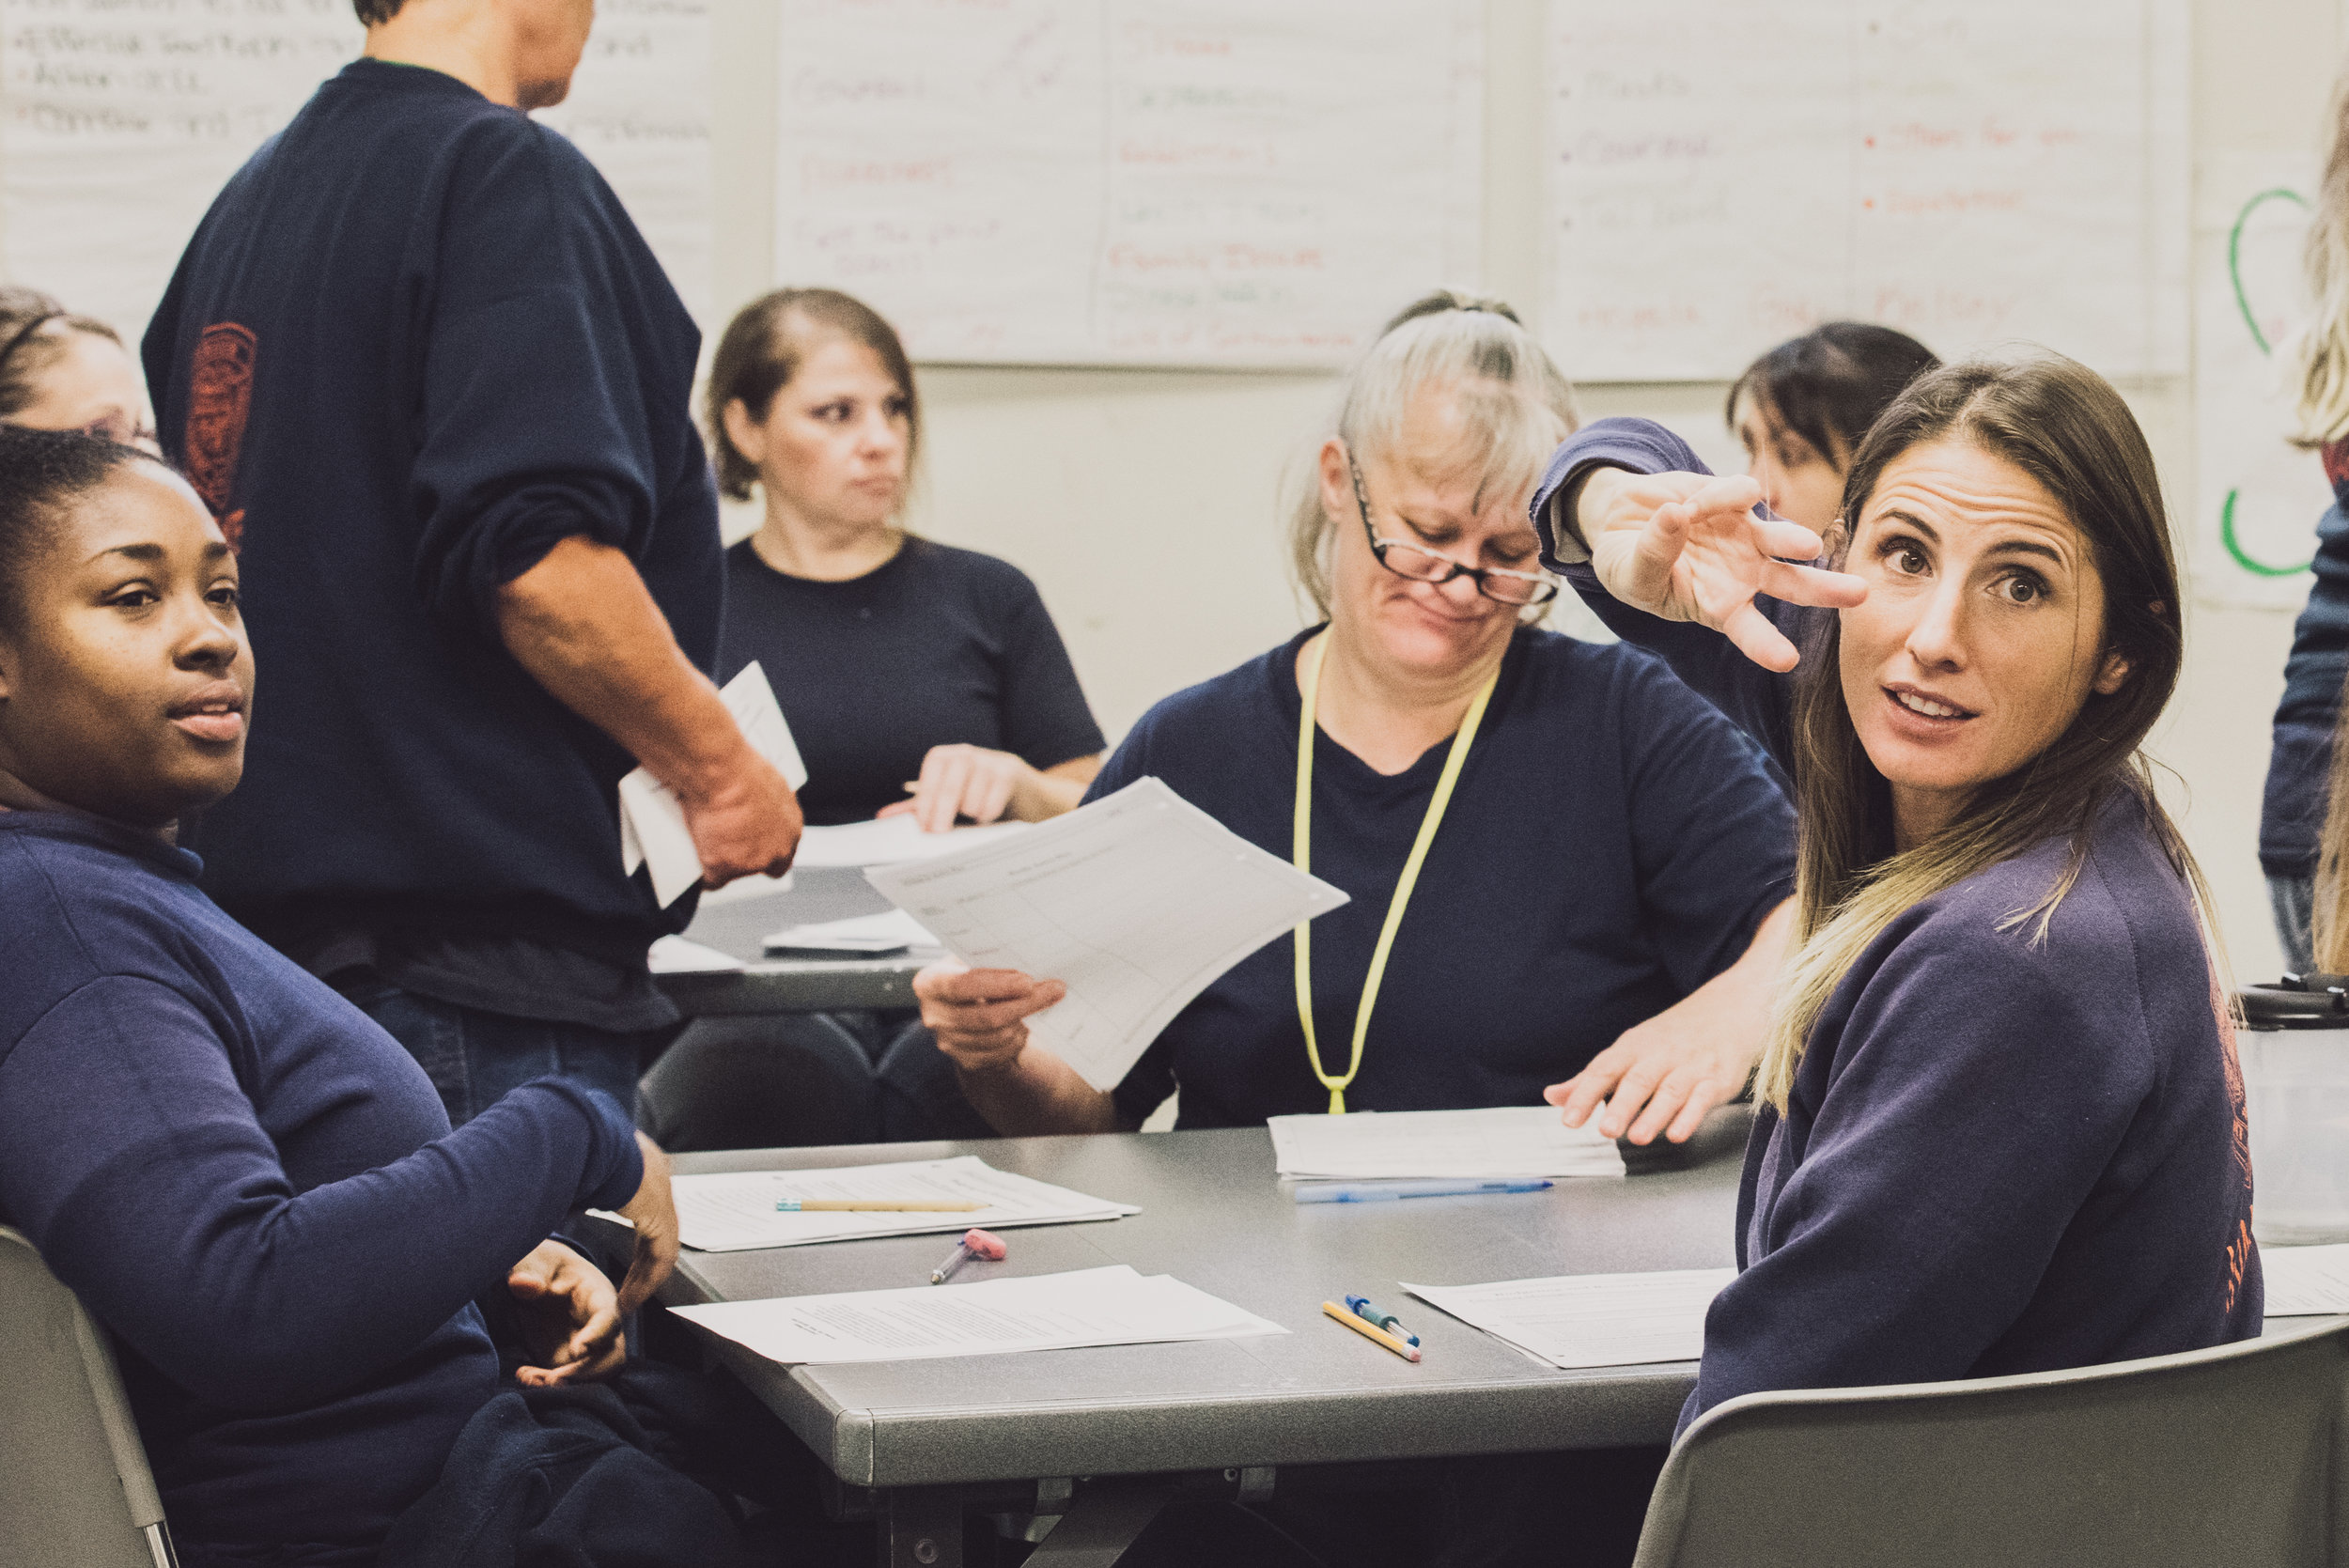 LIFE class at Coffee Creek Correctional Facility, teaching entrepreneurship and business skills to incarcerated women. Offered through Mercy Corps Northwest.